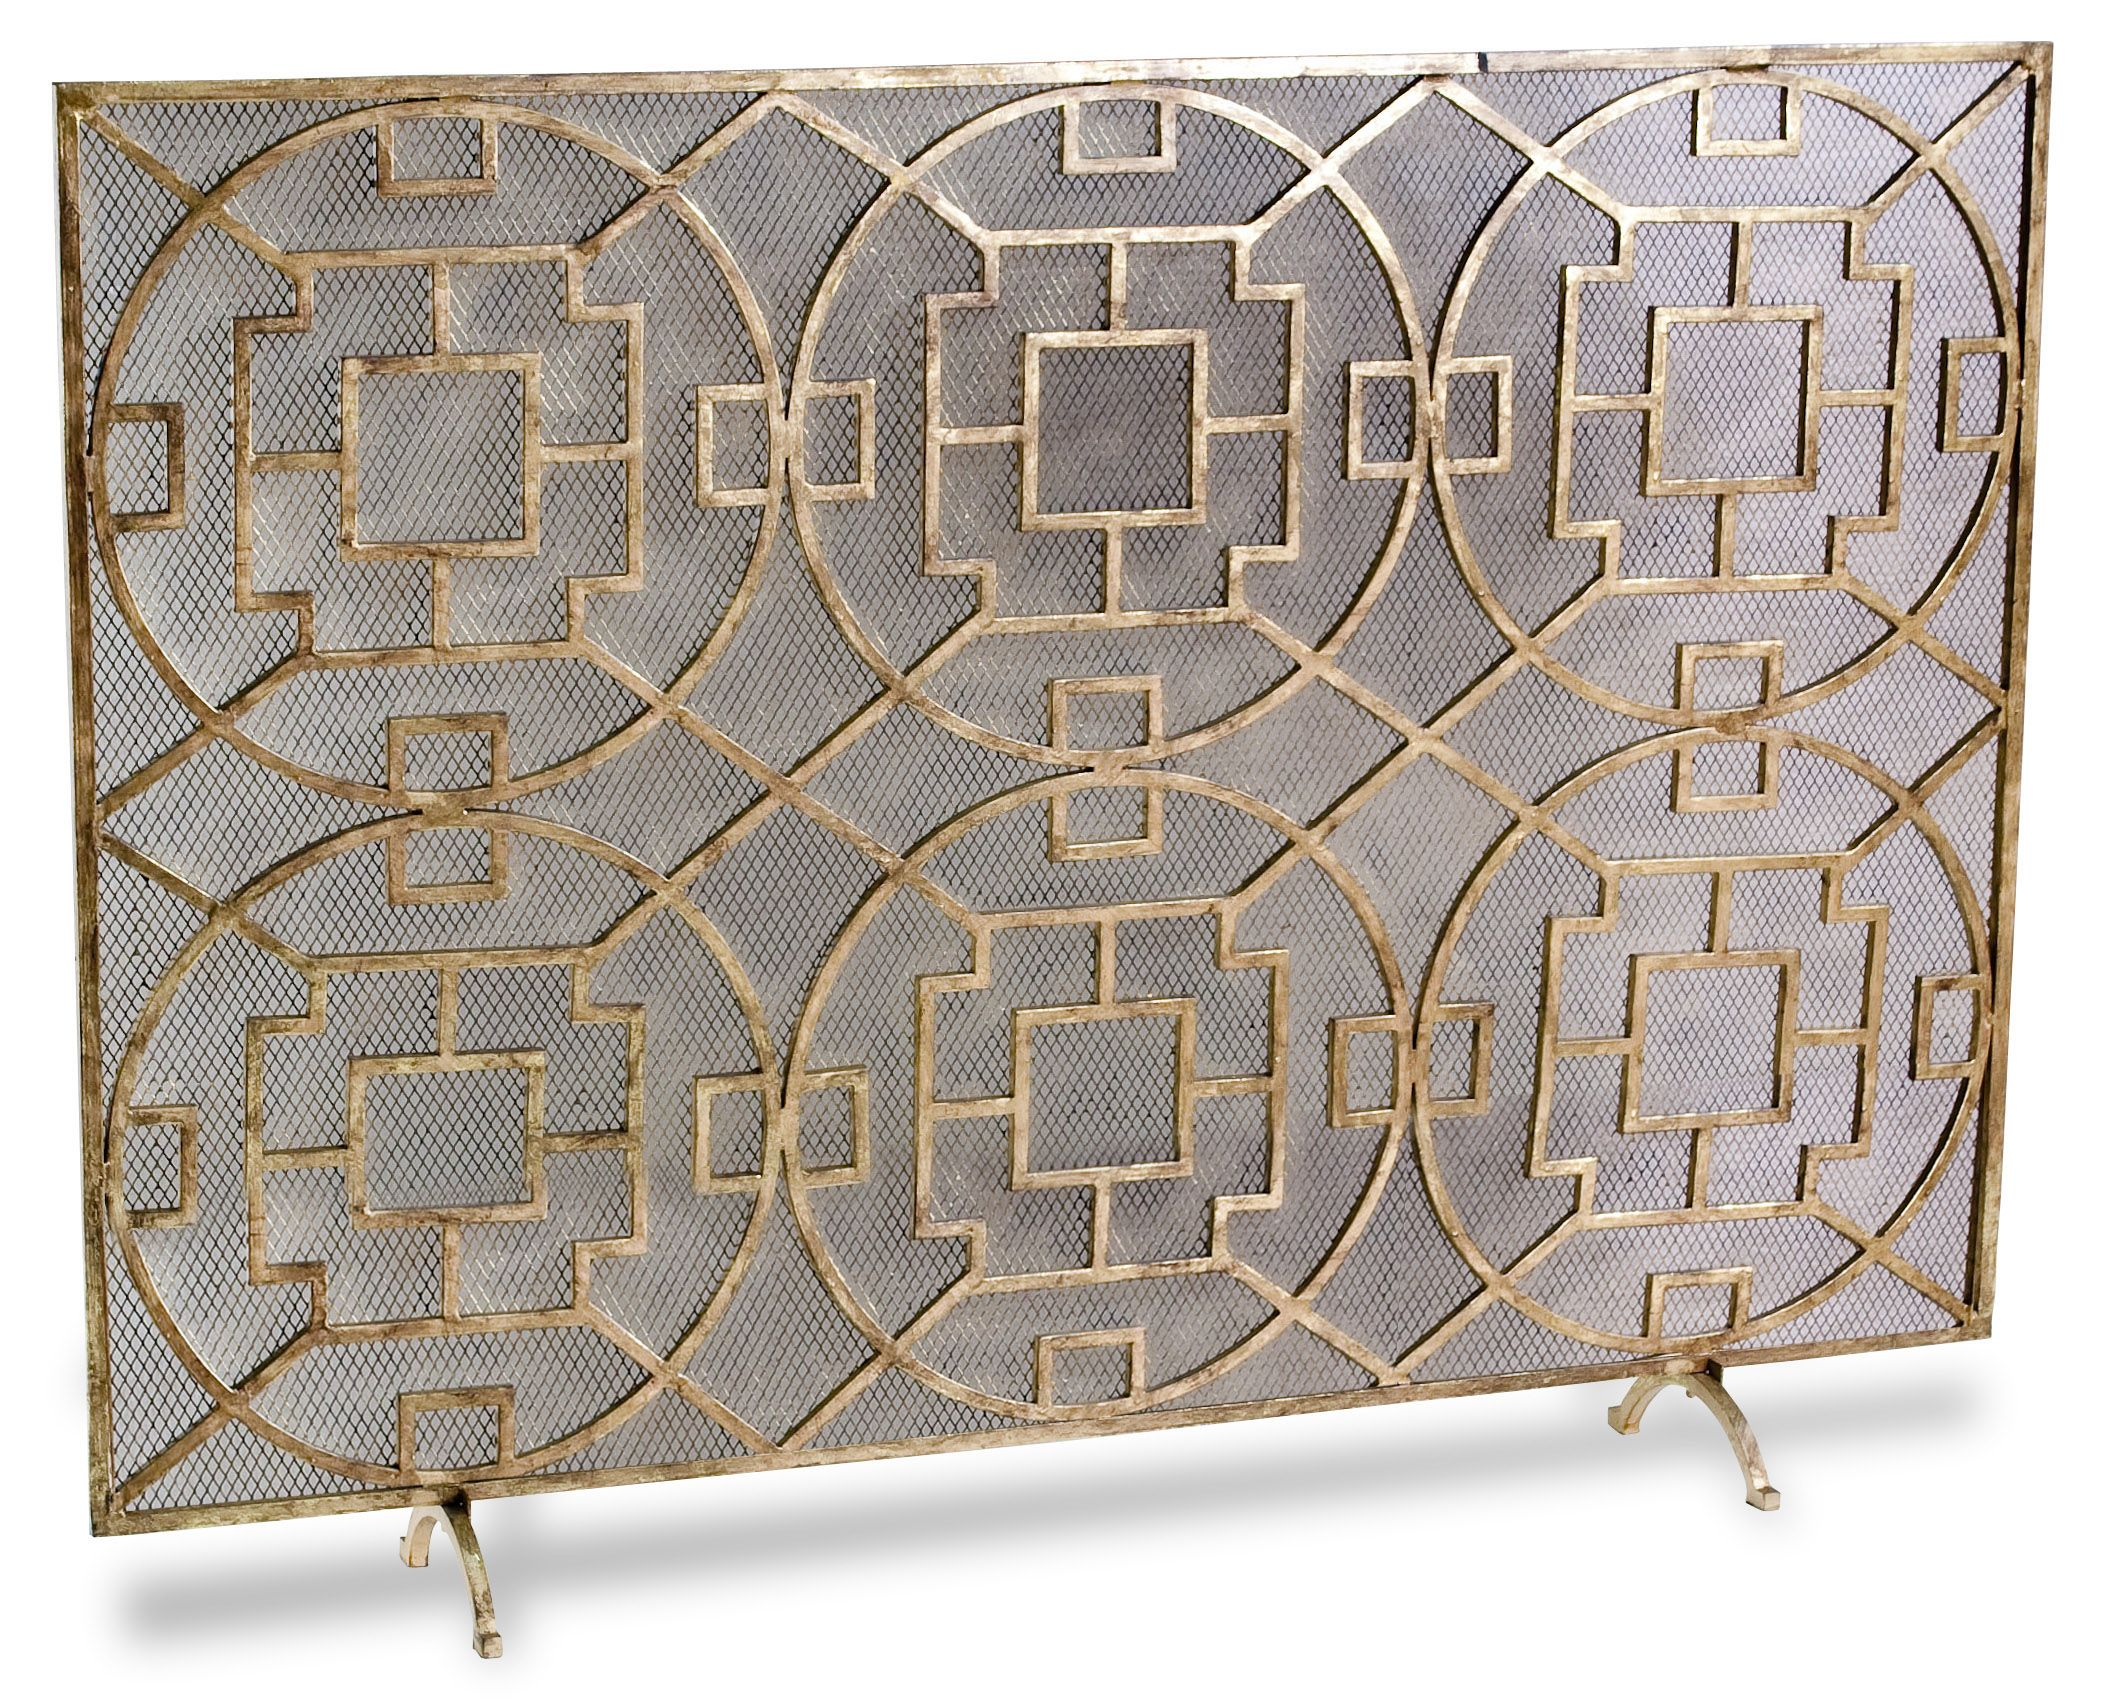 Pyra Modern Transitional Gold Leaf Medallion Fireplace